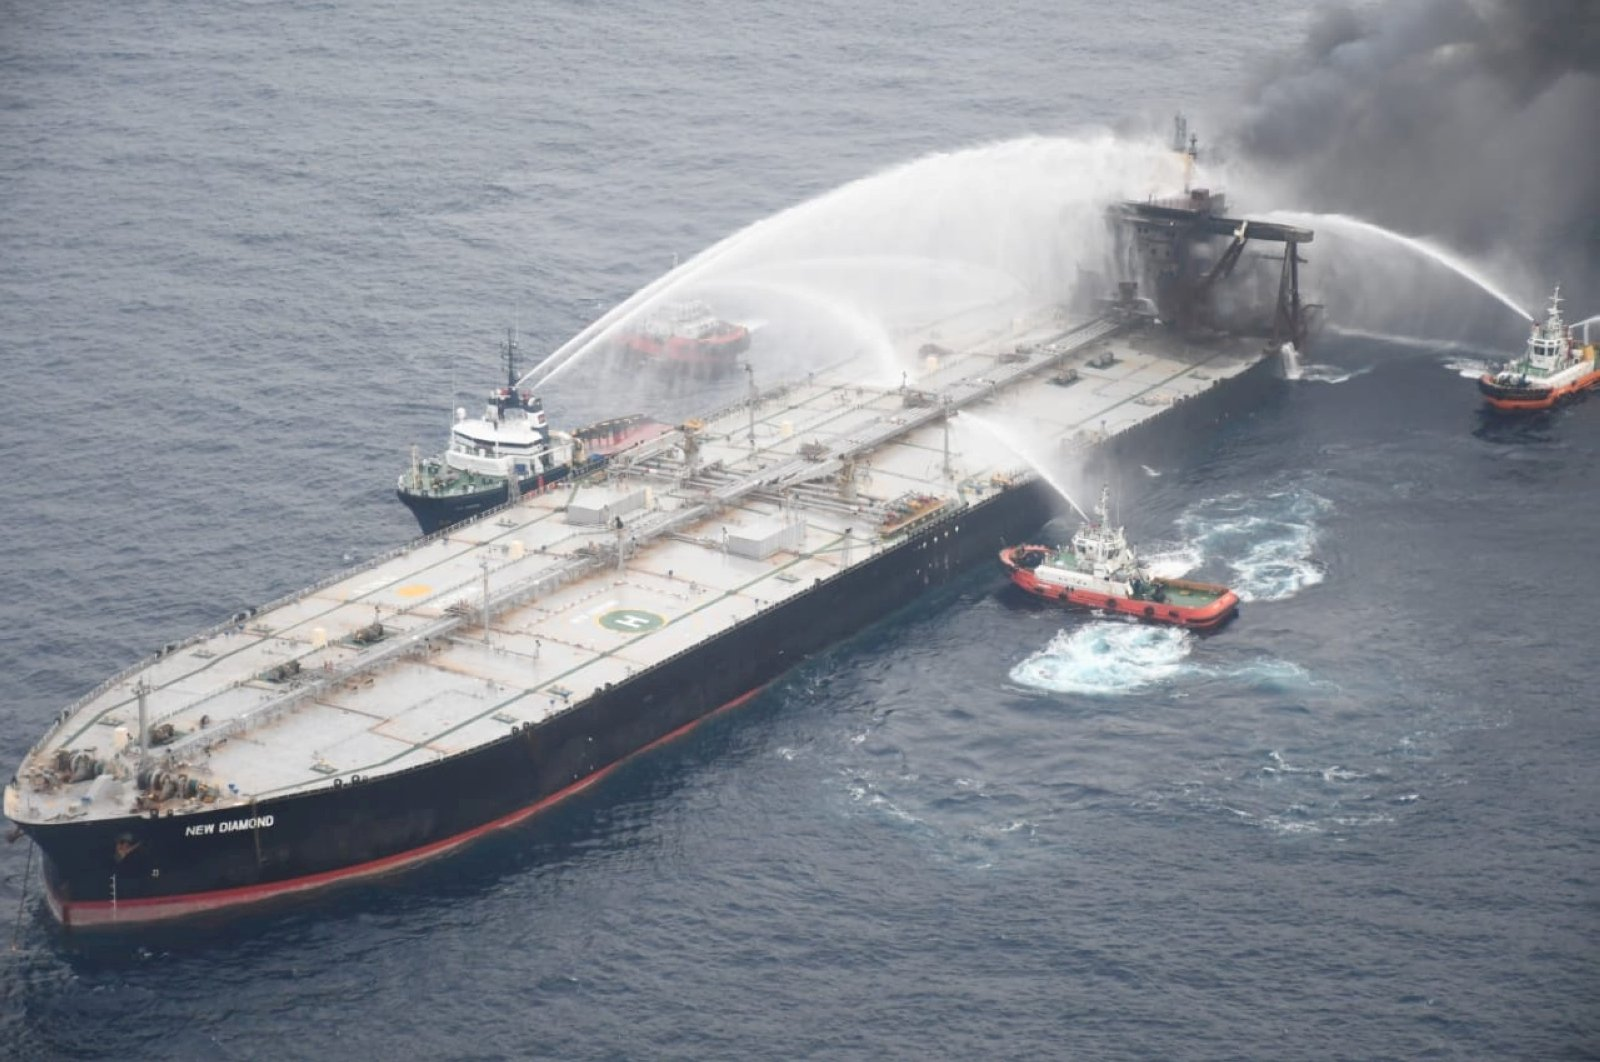 A Sri Lankan Navy boat sprays water on the New Diamond, a very large crude carrier (VLCC) chartered by Indian Oil Corp (IOC), that was carrying the equivalent of about 2 million barrels of oil, after a fire broke out off east coast of Sri Lanka Sept. 8, 2020. (Reuters Photo)